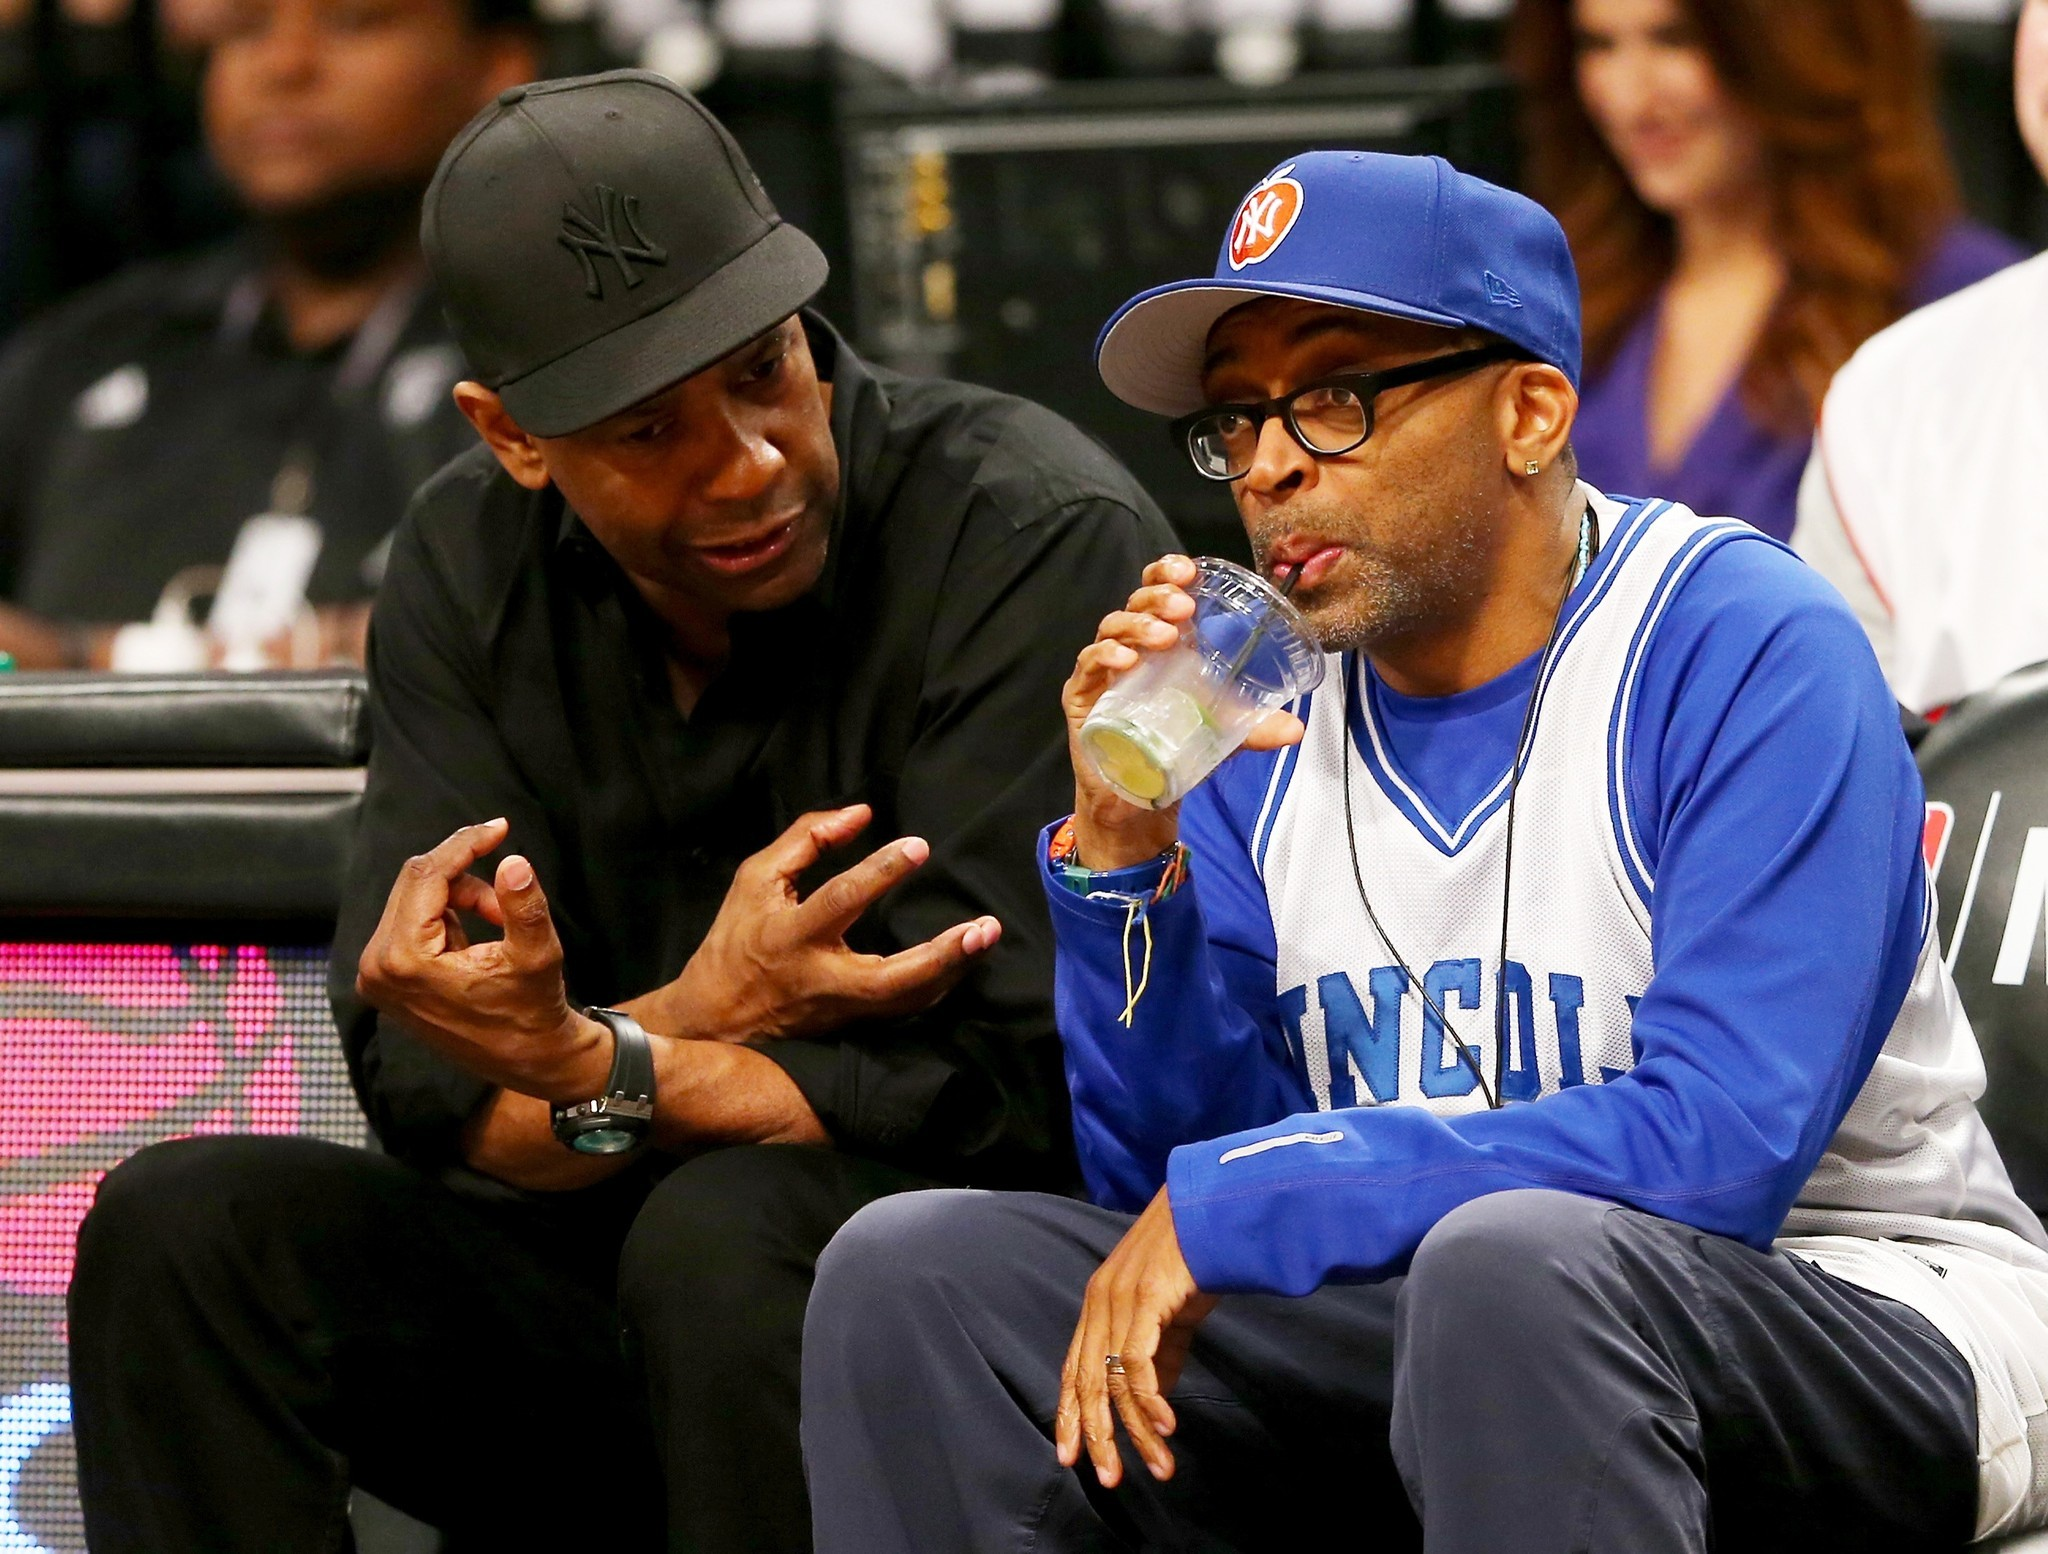 Celebs spotted at Miami Heat games - Denzel Washington and Spike Lee